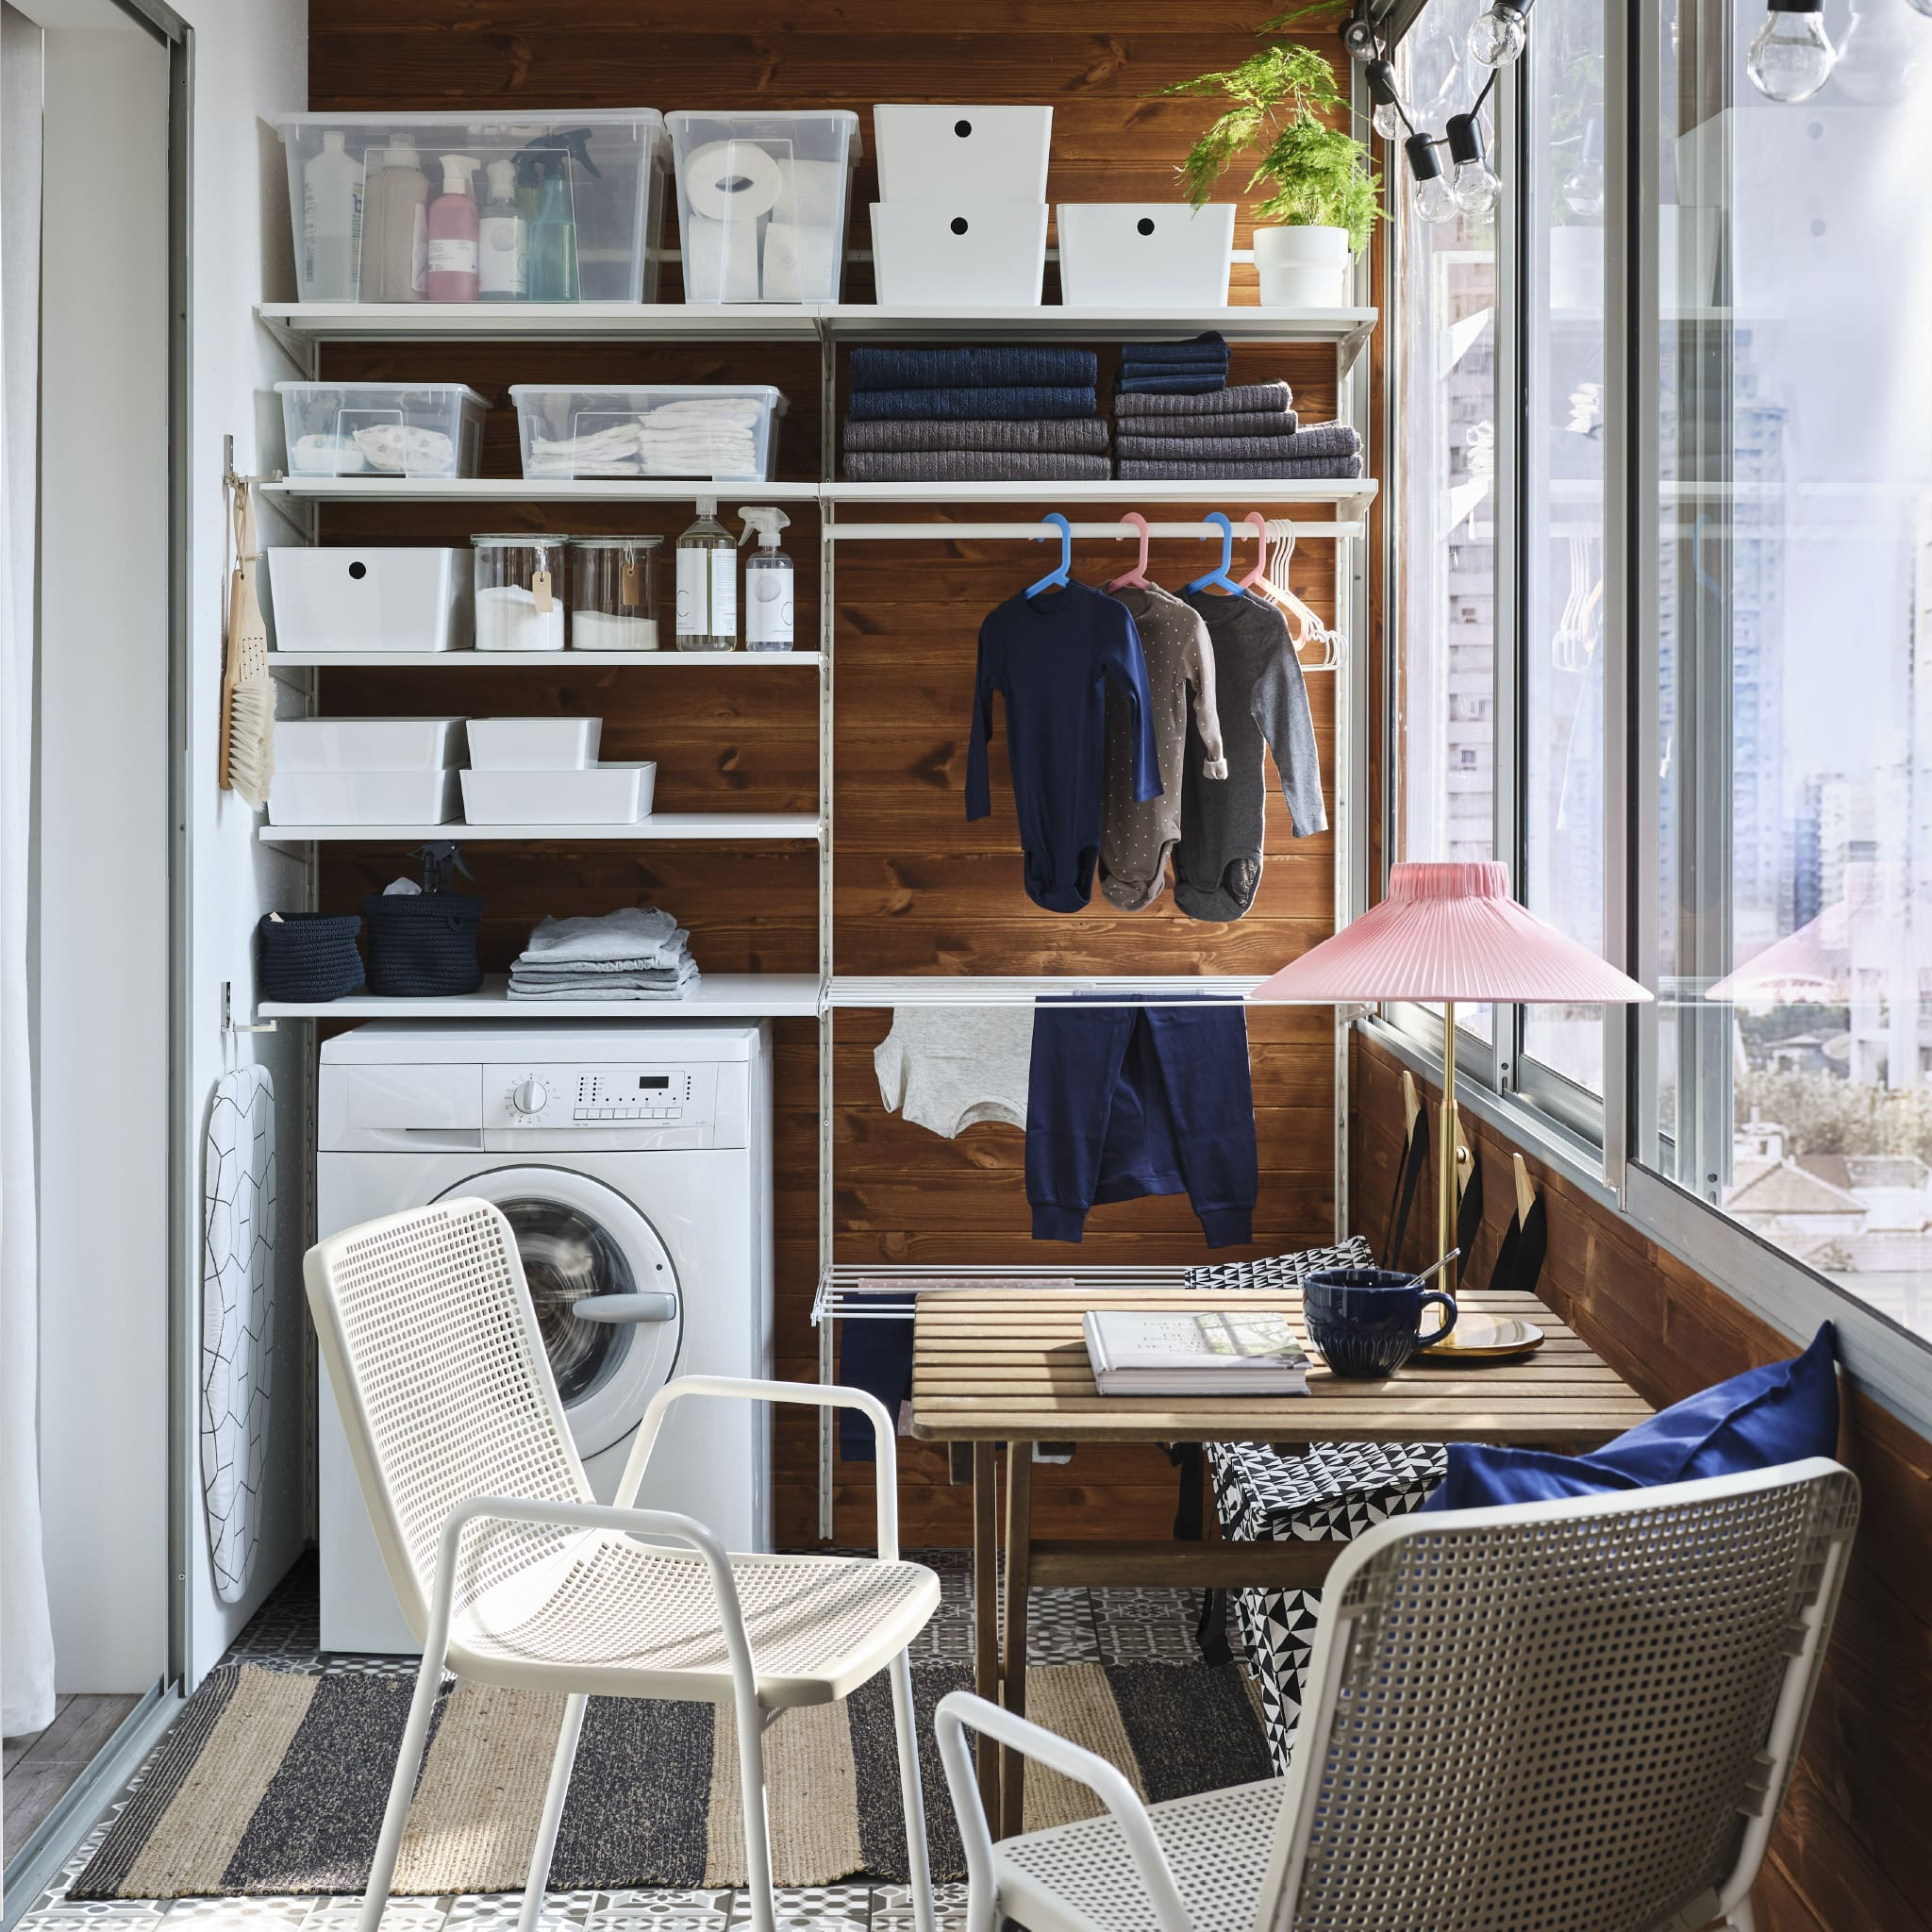 A customised laundry room